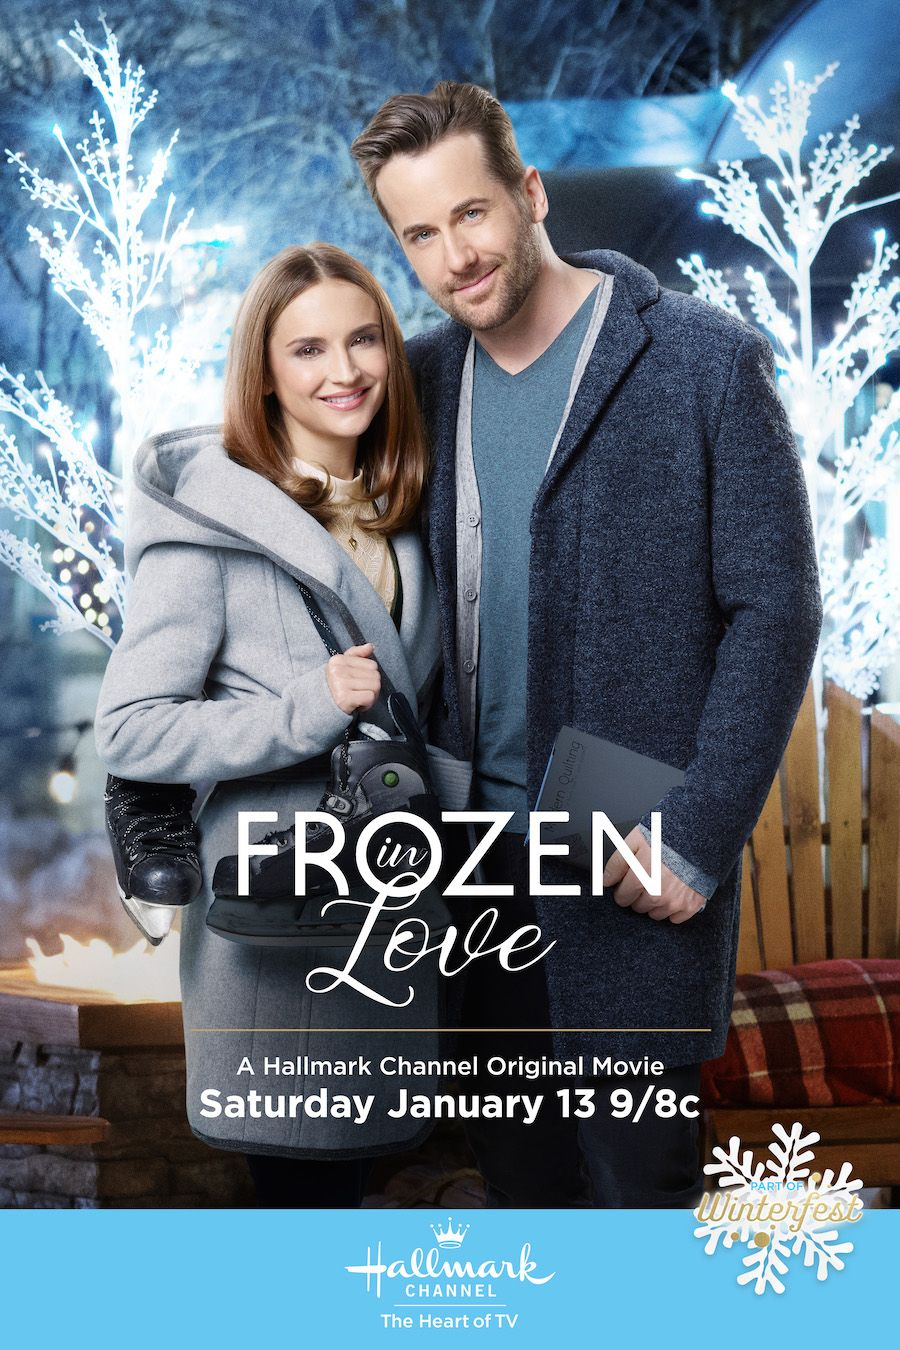 Frozen In Love Rachael Leigh Cook And Niall Matter Discover That Polar Opposites May Attract Hallmark Movies Romance Hallmark Movies Christmas Movies On Tv